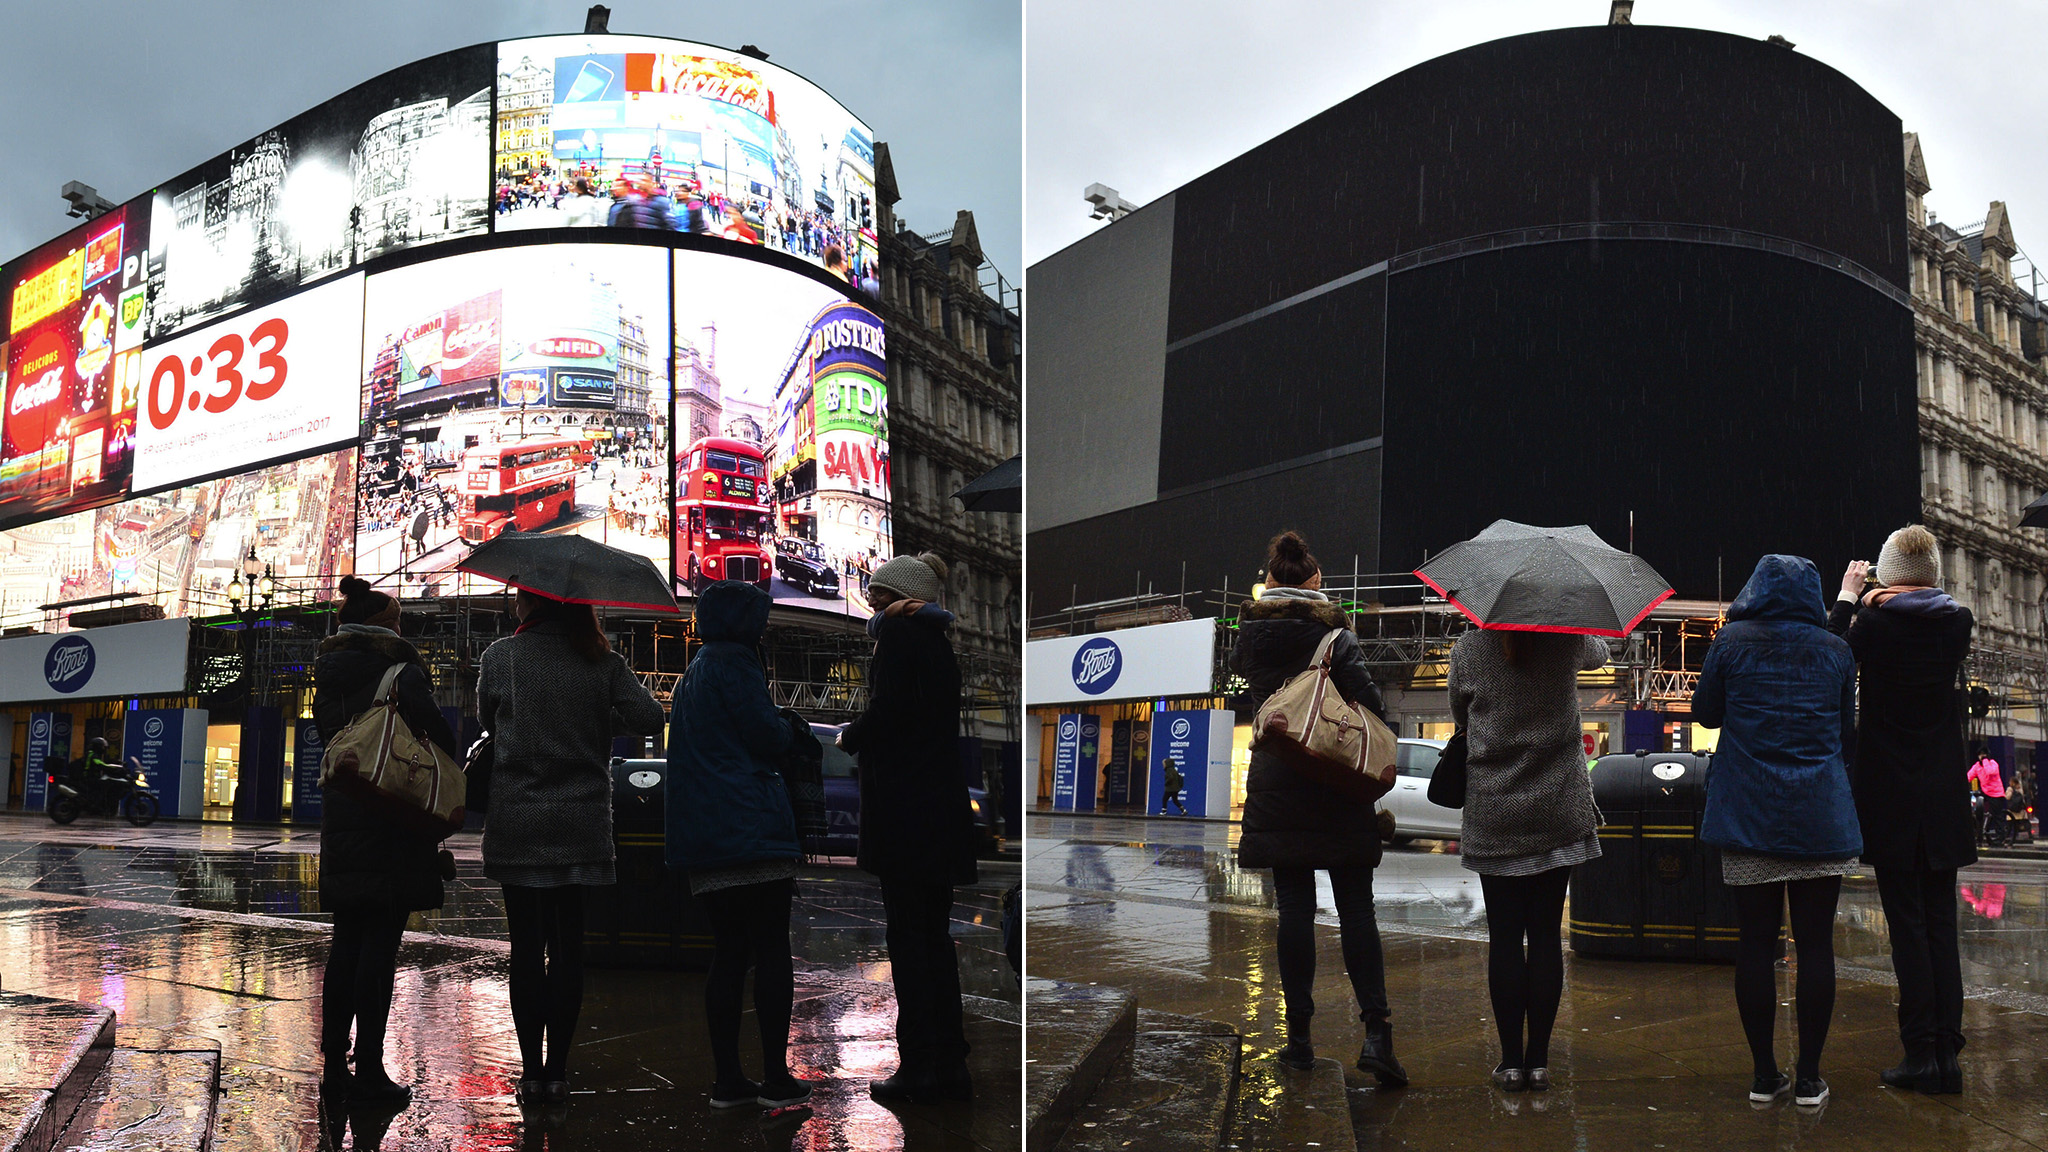 Police watch as the advertising screens at Piccadilly Circus, central London, after they were switched off in preparation for redevelopment. PRESS ASSOCIATION Photo. Picture date: Monday January 16, 2017. The iconic lights have gone out so that the electronic hoardings can be replaced with a state-of-the-art screen measuring 790 square metres which is expected to be unveiled in the autumn. See PA story TECHNOLOGY Piccadilly. Photo credit should read: Dominic Lipinski /PA Wire